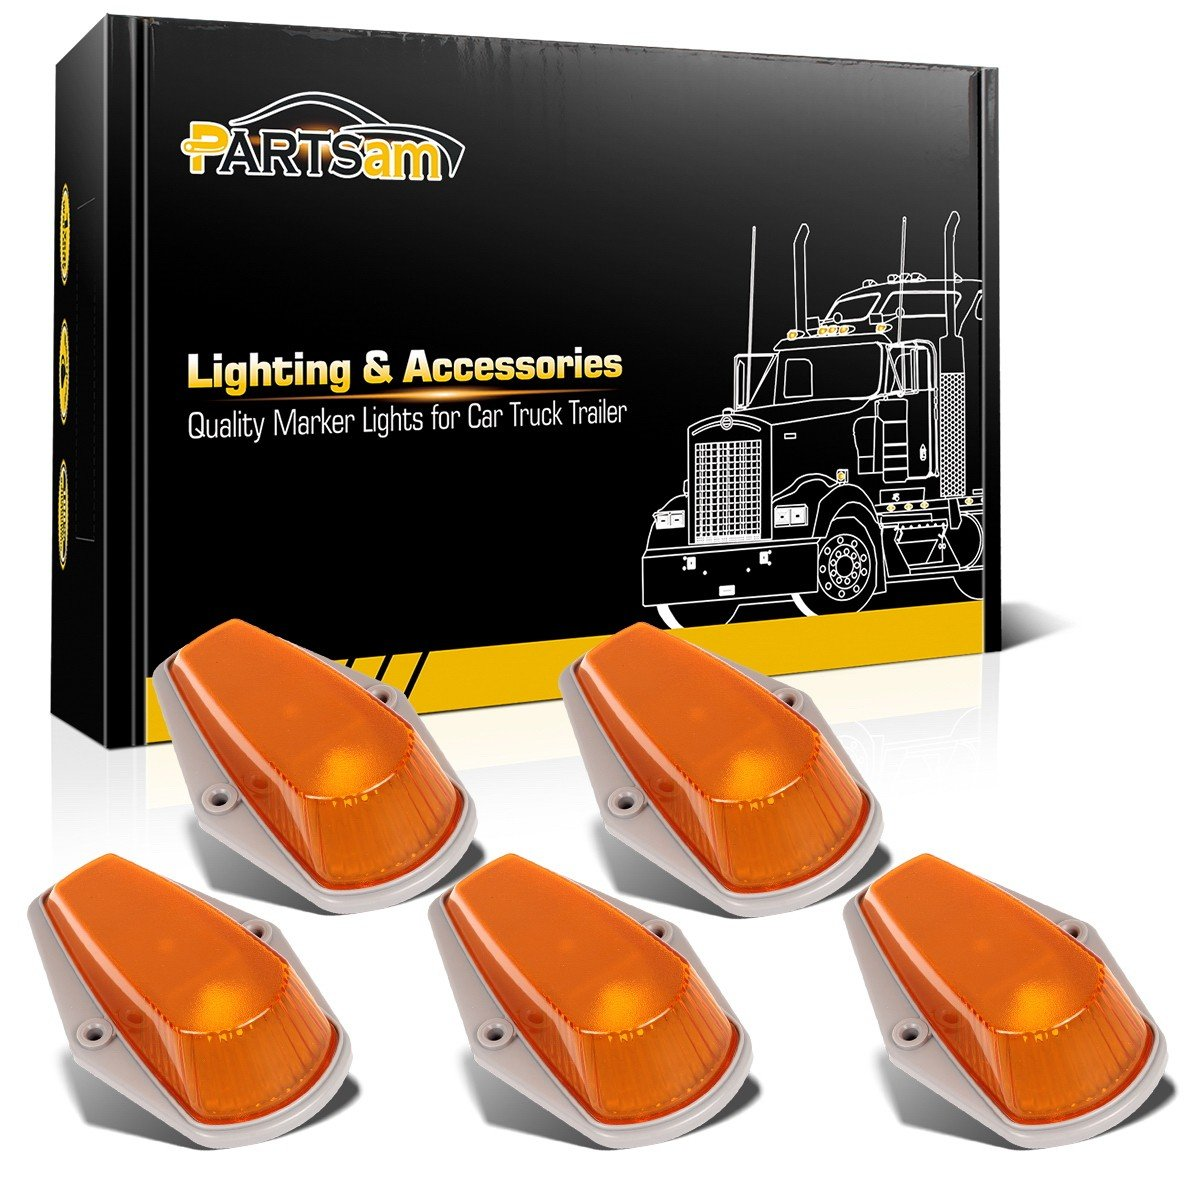 Partsam 5x Roof Running Clearance Light Cab Marker Light Amber Covers w/Base Replacement For 1980-1997 Ford F150 F250 F350 Super Duty Pickup Trucks